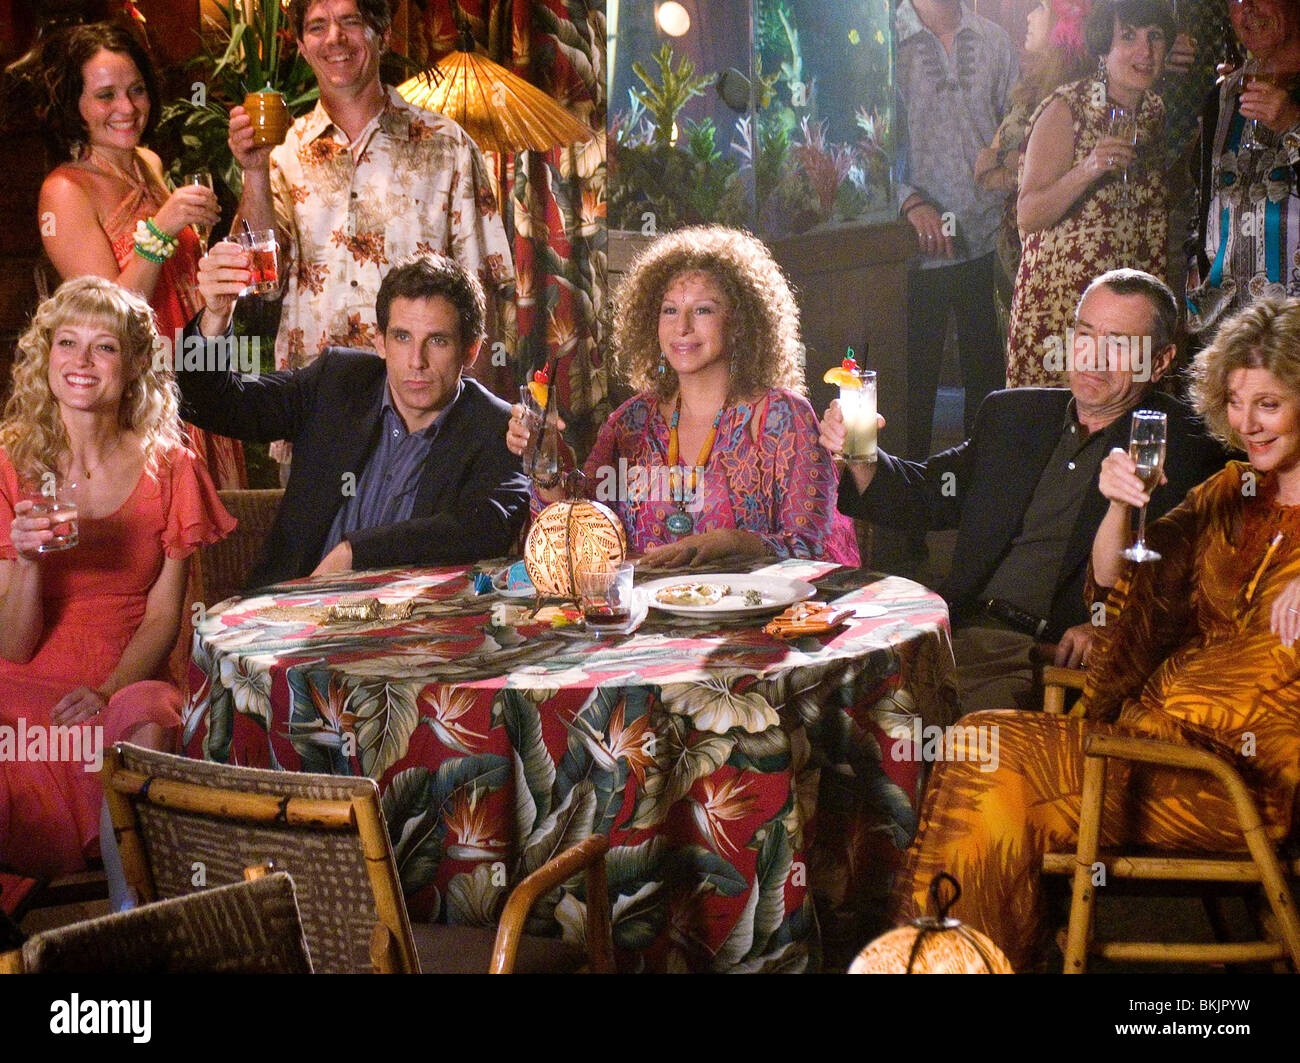 Meet The Fockers 2004 Ben Stiller High Resolution Stock Photography And Images Alamy